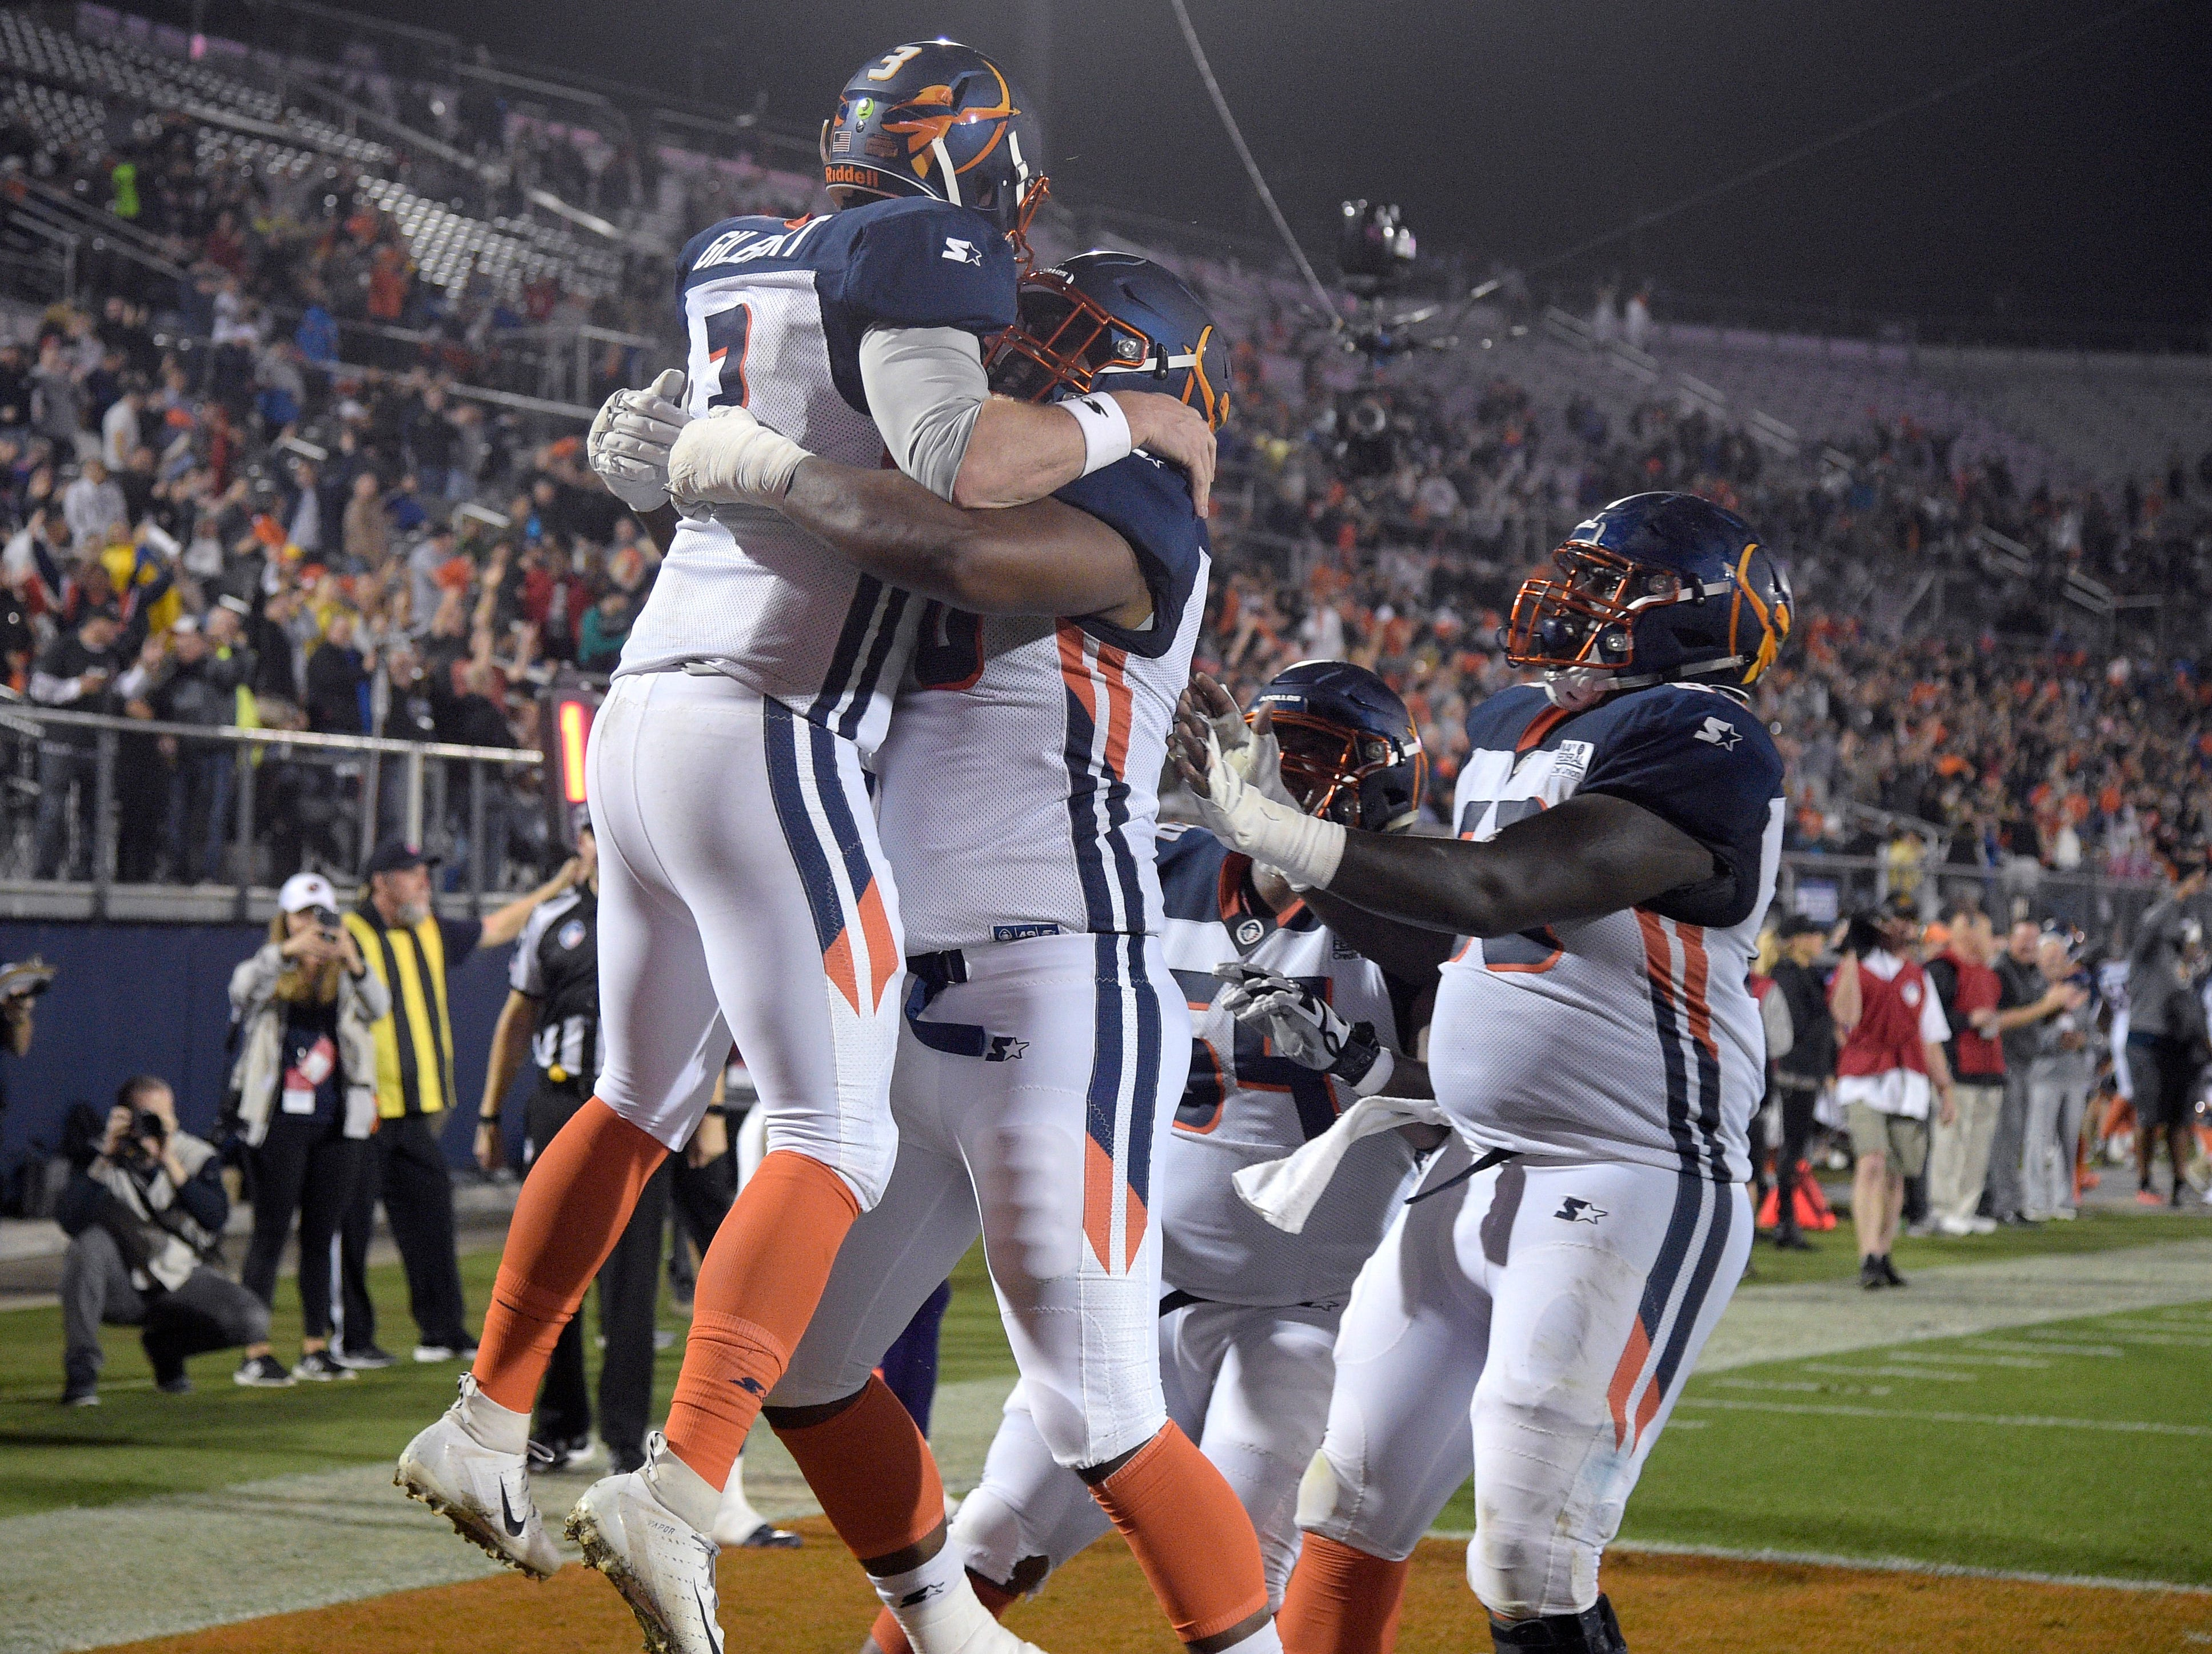 Orlando Apollos quarterback Garrett Gilbert, left, is congratulated by teammates after catching a pass from receiver Jalin Marshall for a 5-yard touchdown during the first half of an Alliance of American Ffootball game against the Atlanta Legends on Saturday, Feb. 9, 2019, in Orlando, Fla. (AP Photo/Phelan M. Ebenhack)